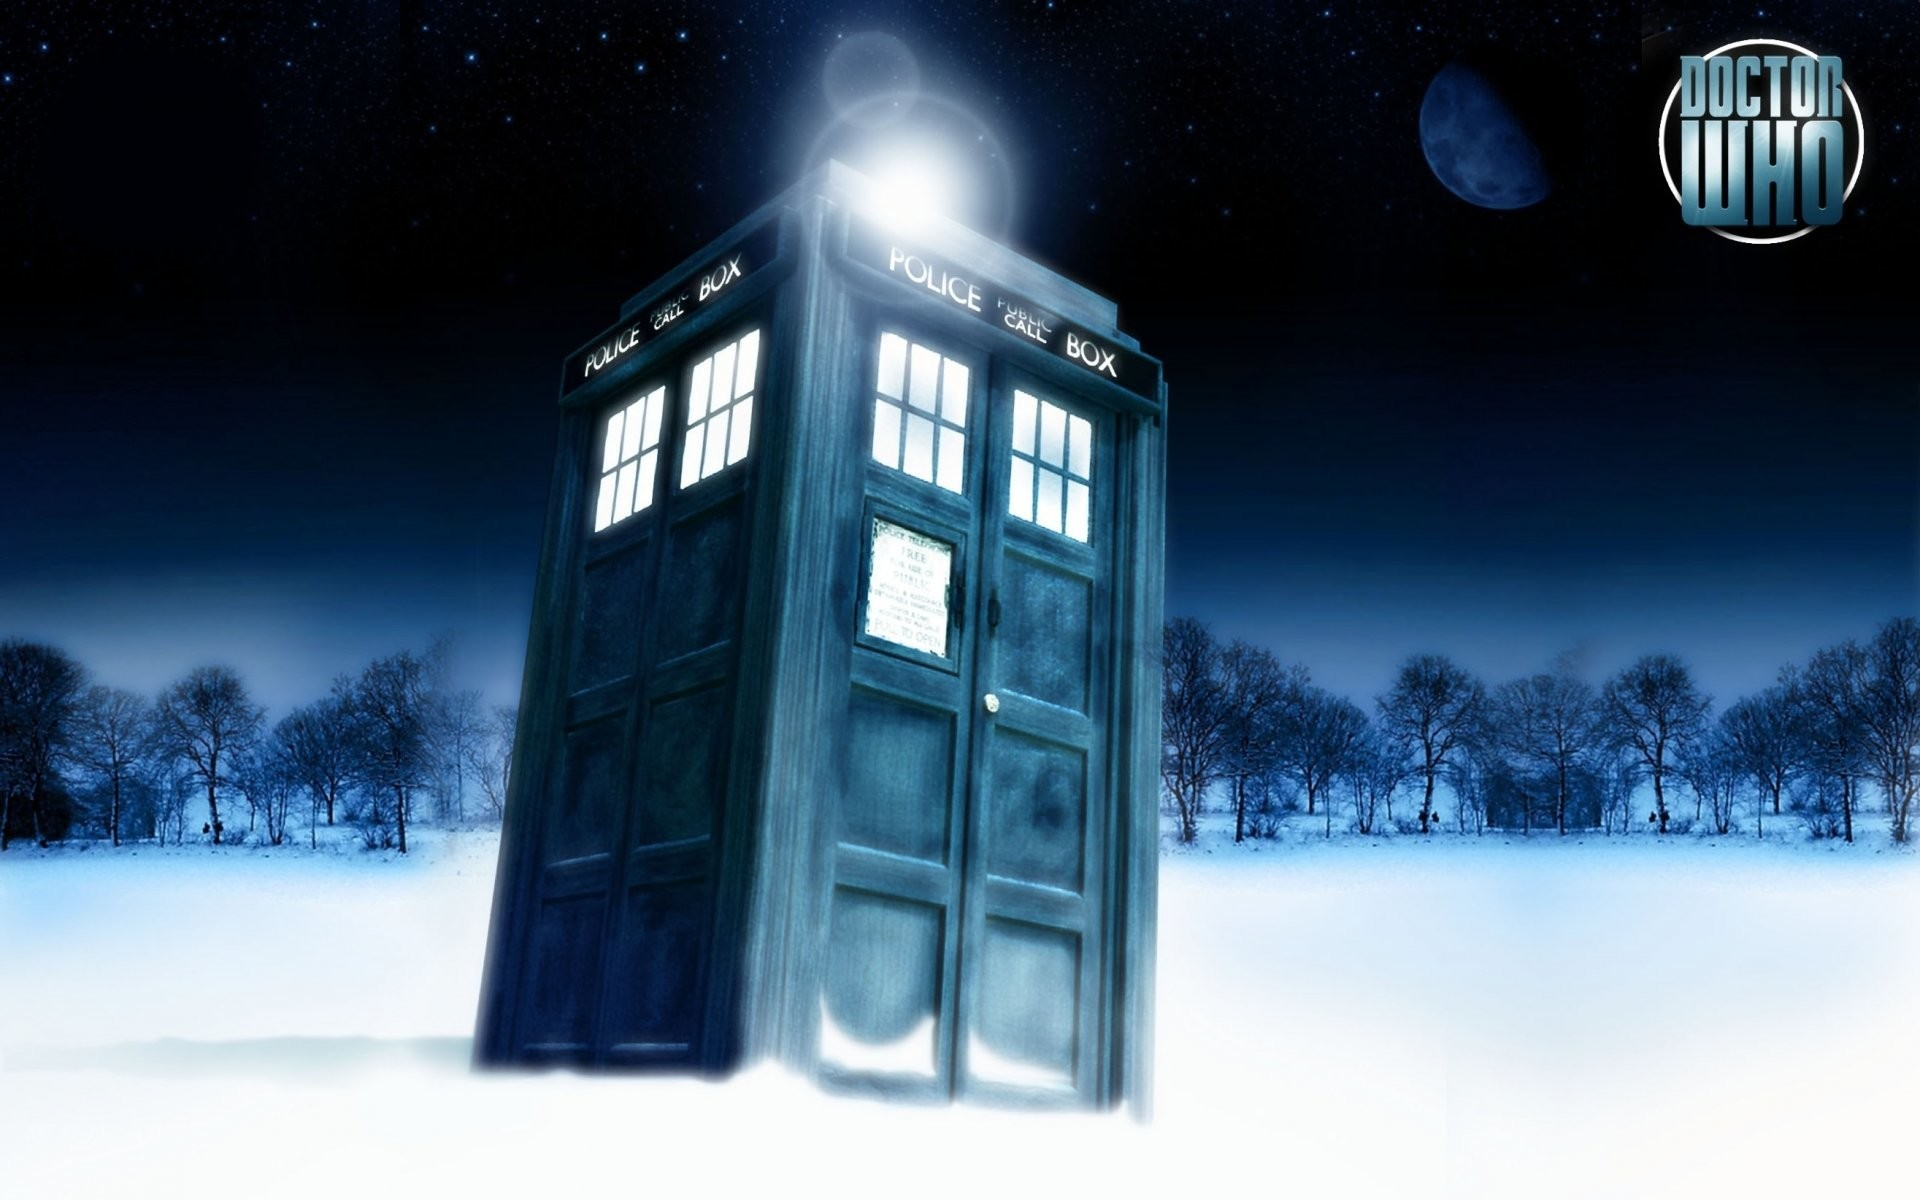 tardis iphone wallpaper 75 images